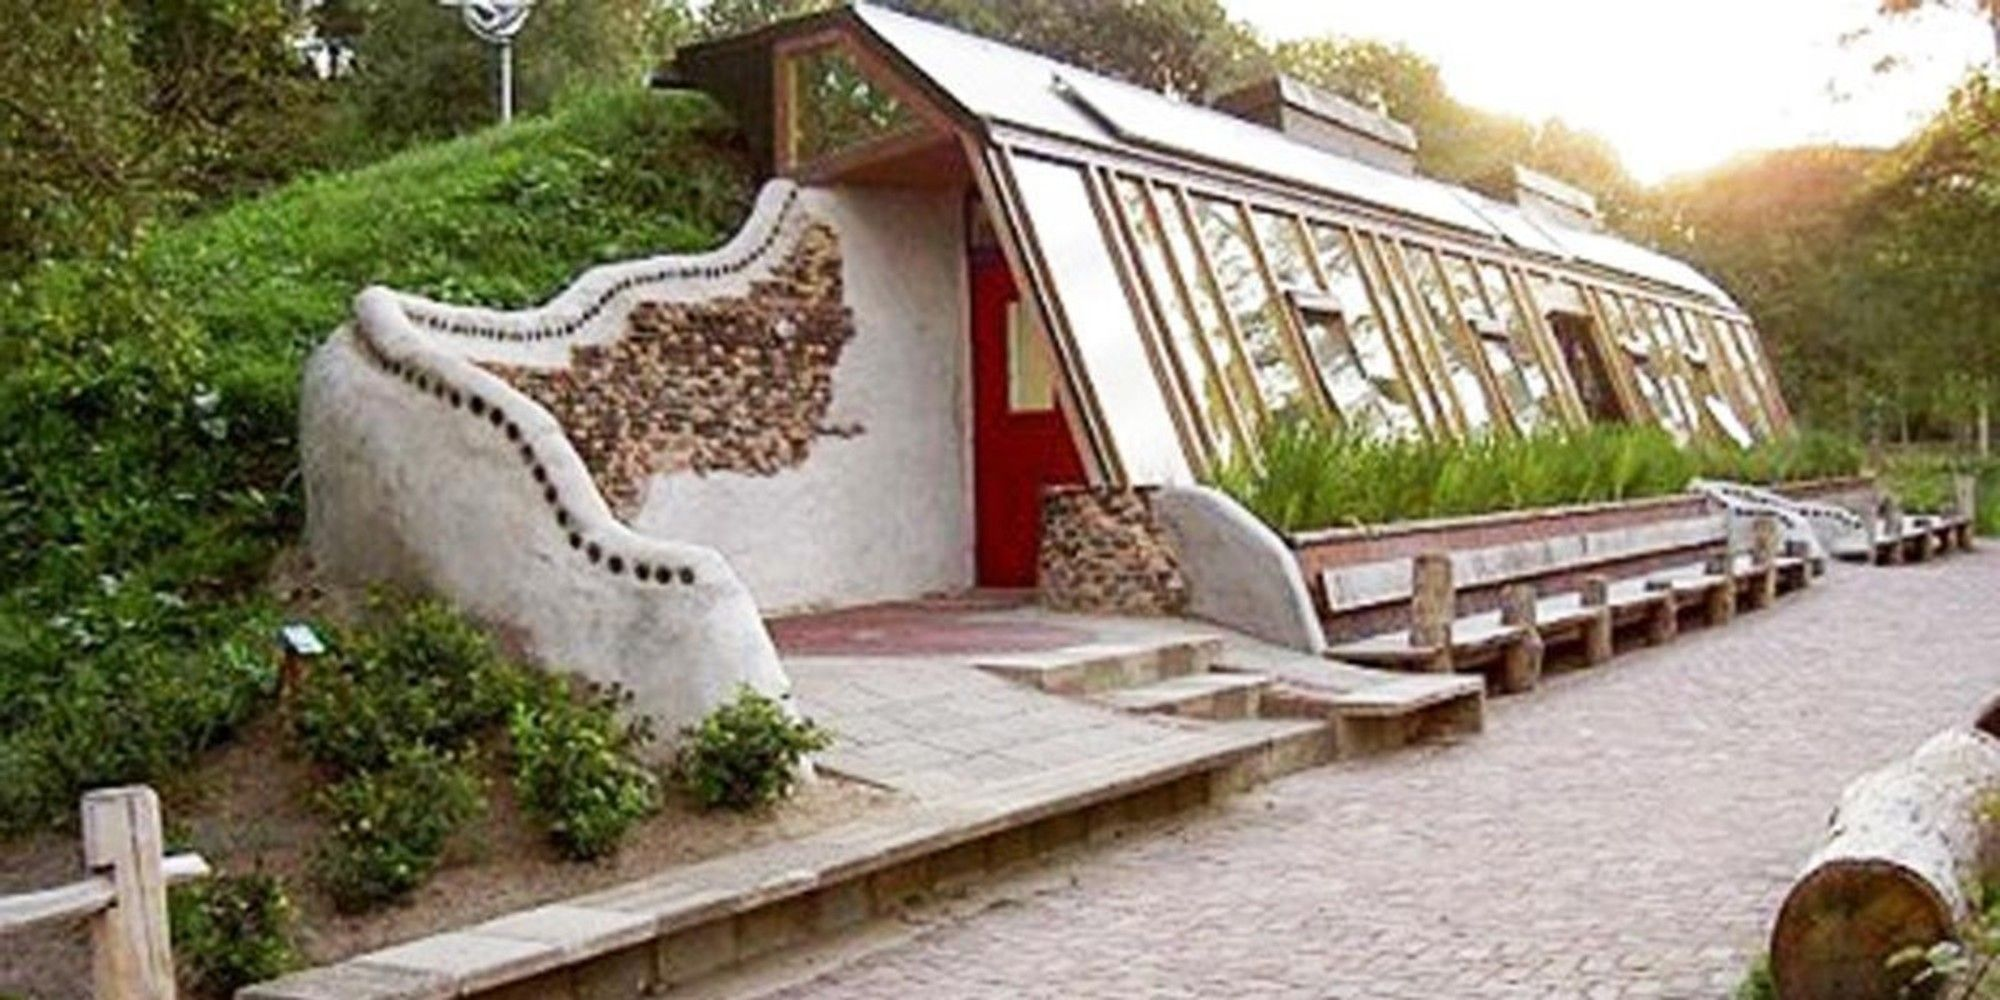 ... Building Off Grid Homes Building Designs On Off The Grid Home Designs,  Building Green Homes Designs ...